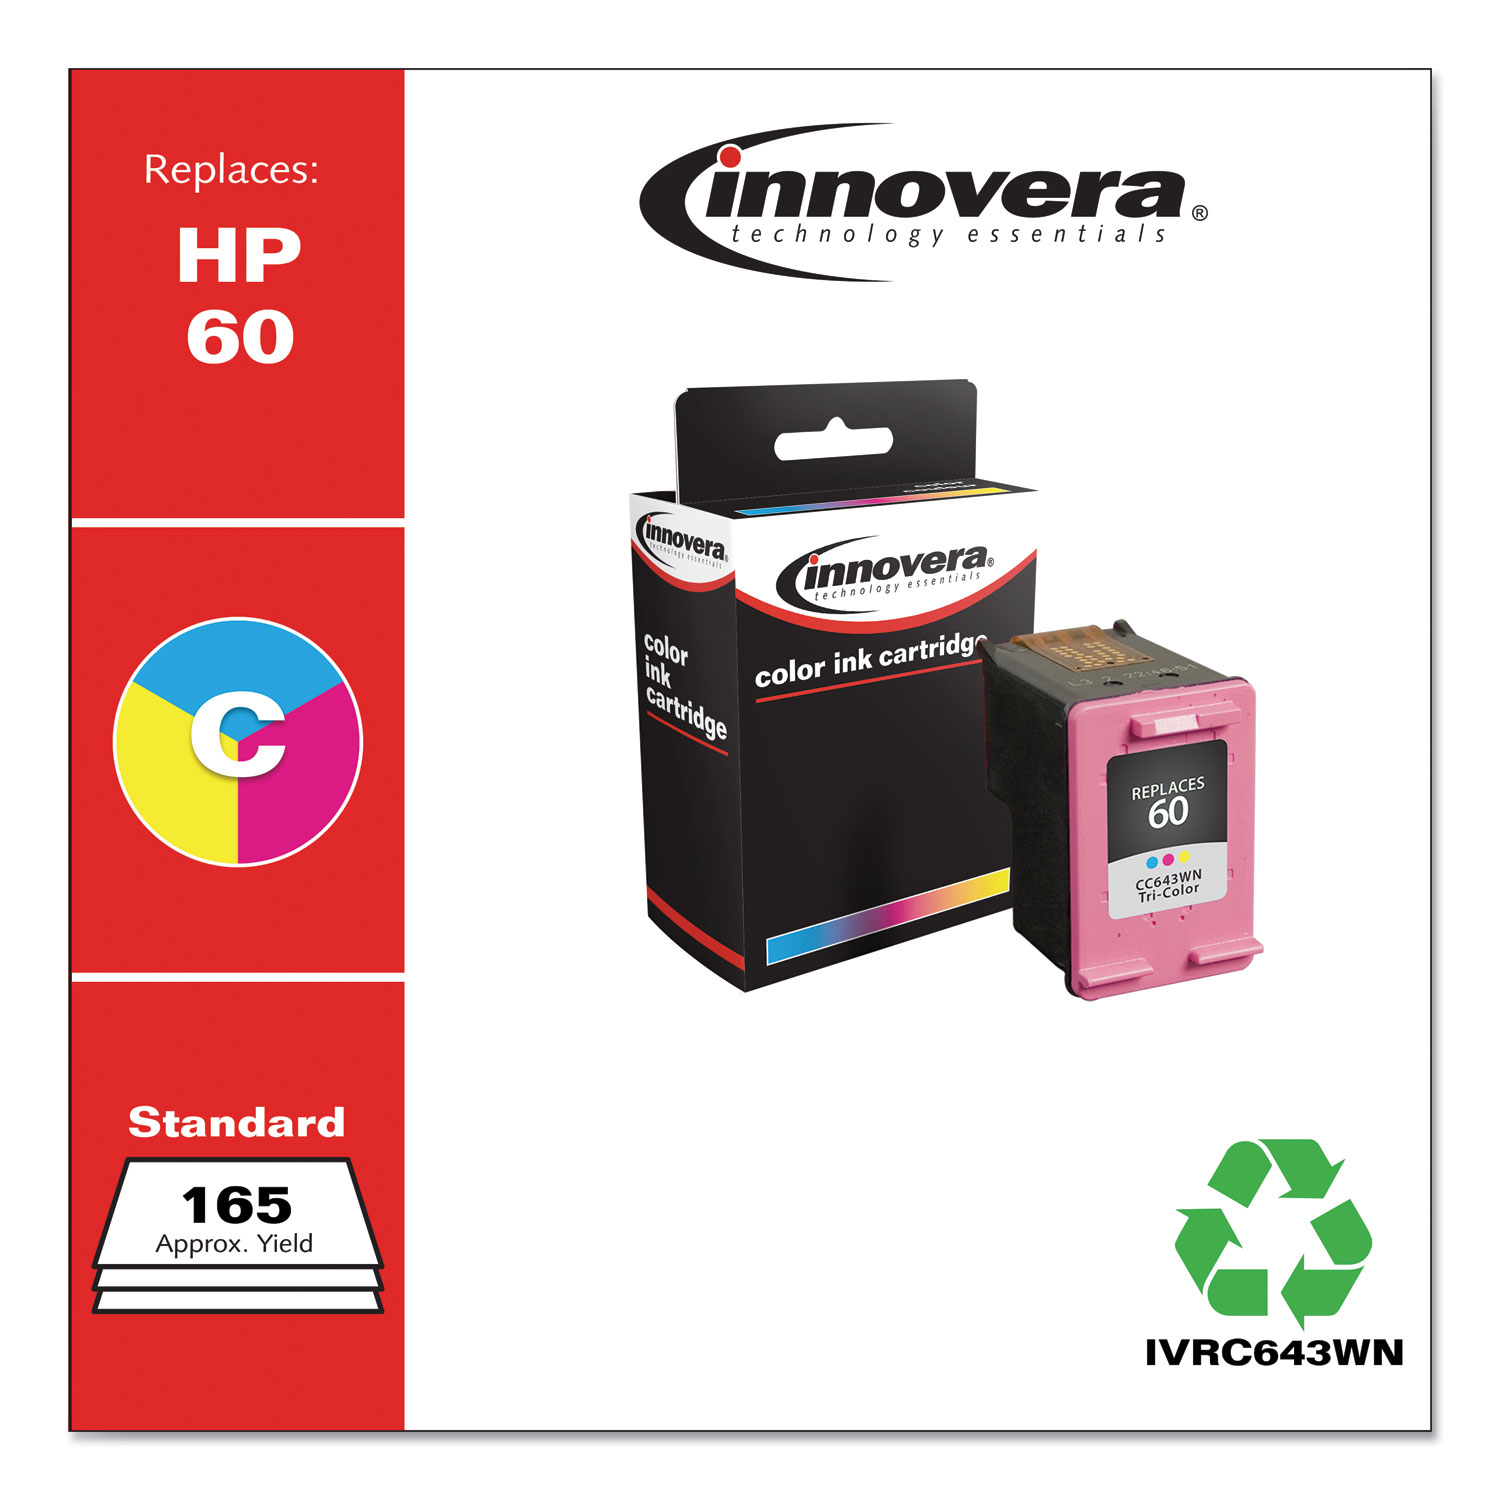 Remanufactured Tri-Color Ink, Replacement for HP 60 (CC643WN), 165 Page-Yield IVRC643WN